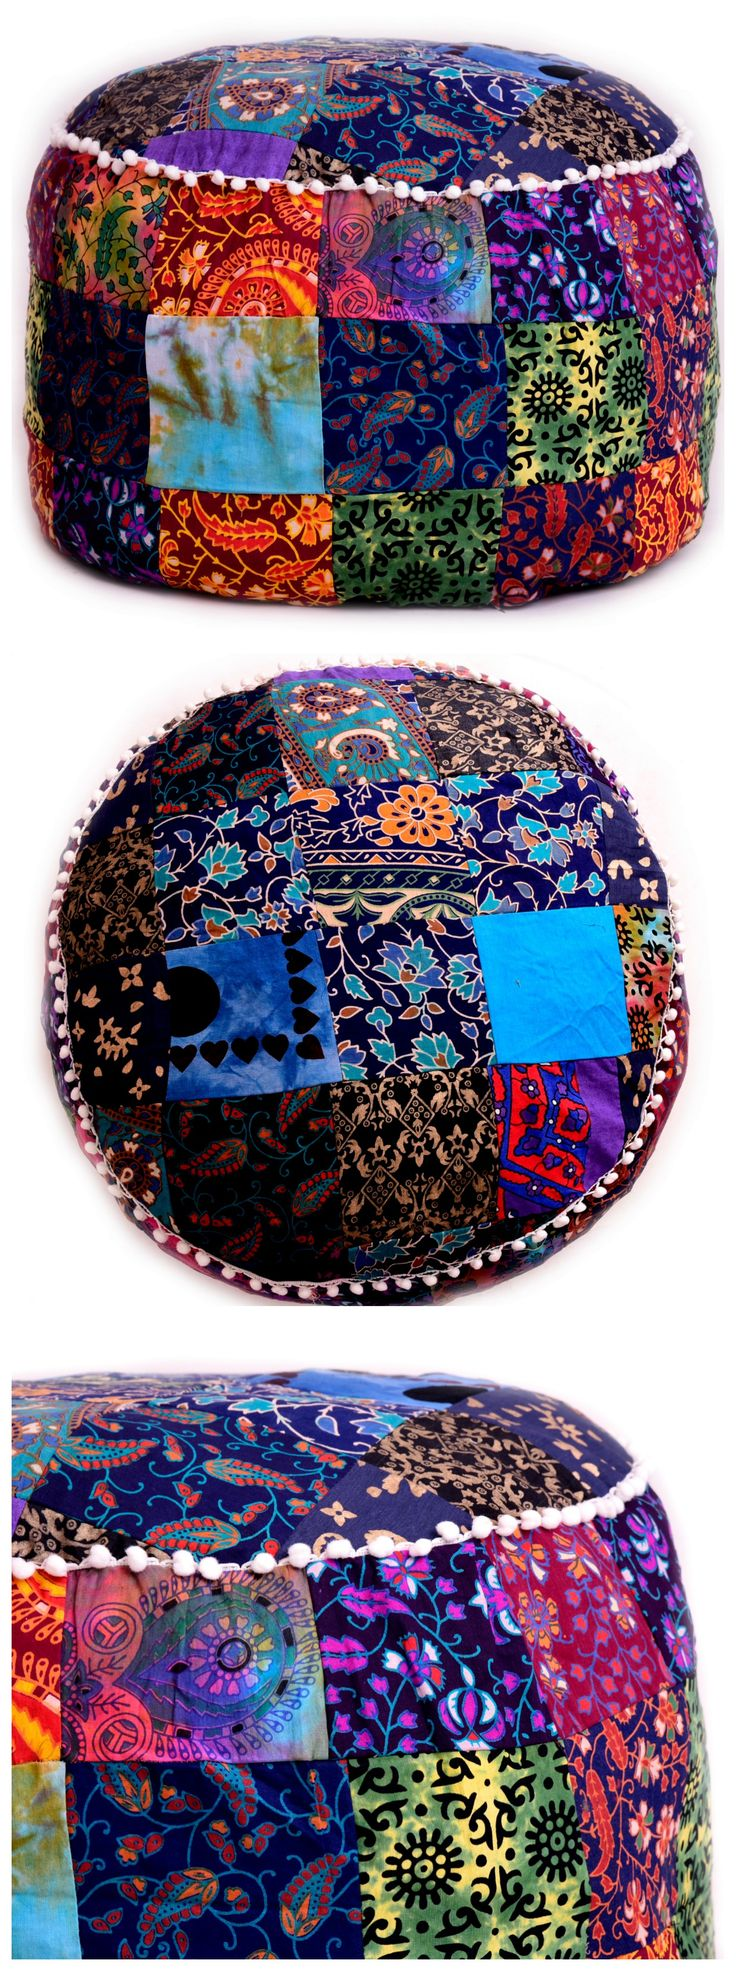 ❤❤ Hippie Indian Cotton Patchwork Pouf Ottoman Cover ❤❤ * It can also be considered as decorative item as they are widely used for home decoration in a very stylish way. This gorgeous Ottoman cover will add warmth style and elegance to any room in your home. #boho #bohemian #free Shipping #India #patchwork #traditional #love #gypsy #soul #handicraftpalace #buy #pompom #room #decor #living